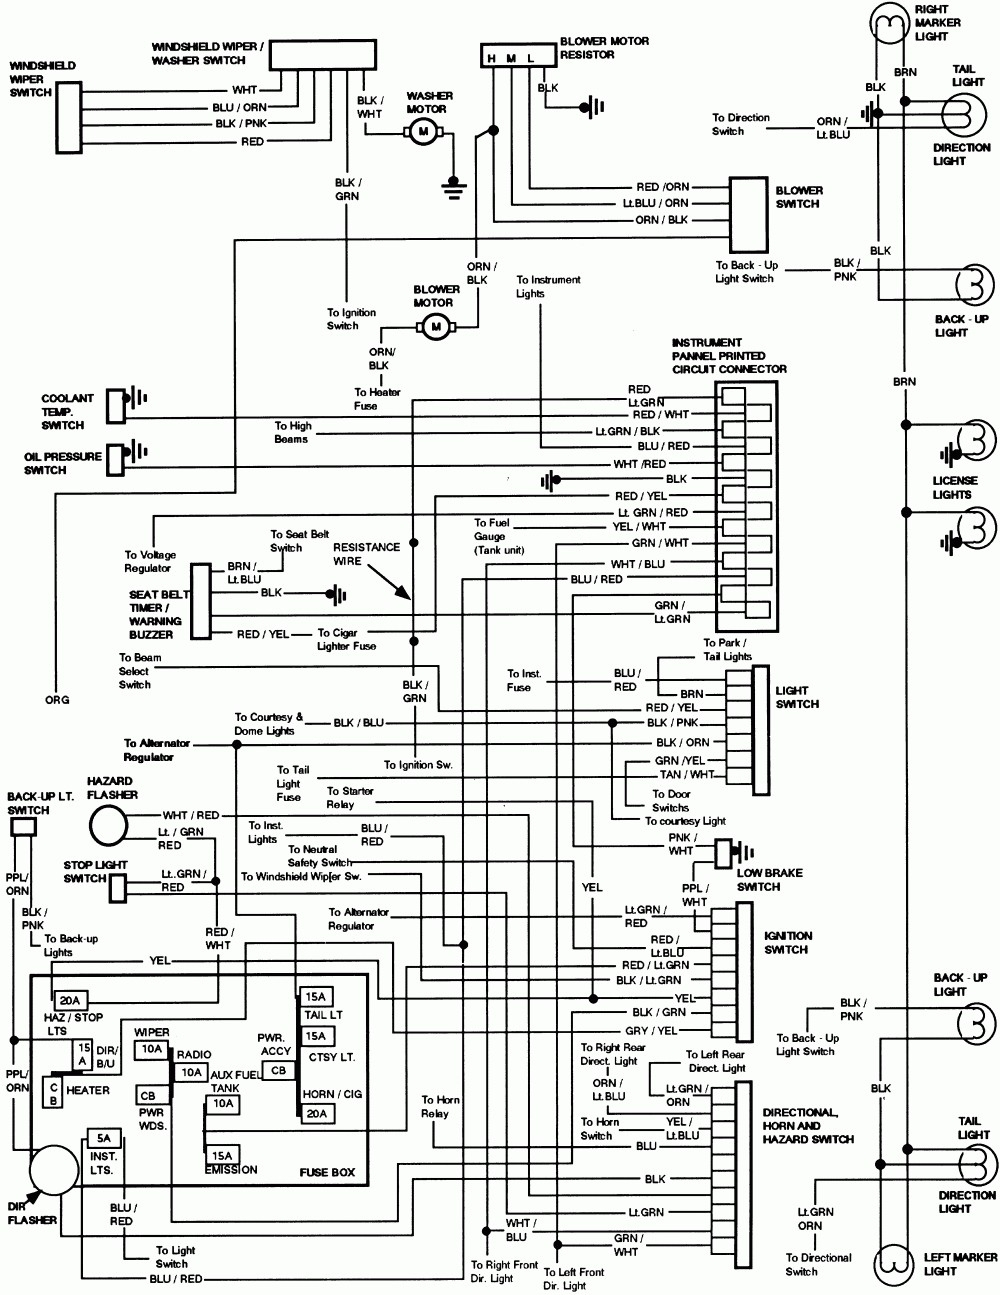 73 ford f 250 wiring diagram